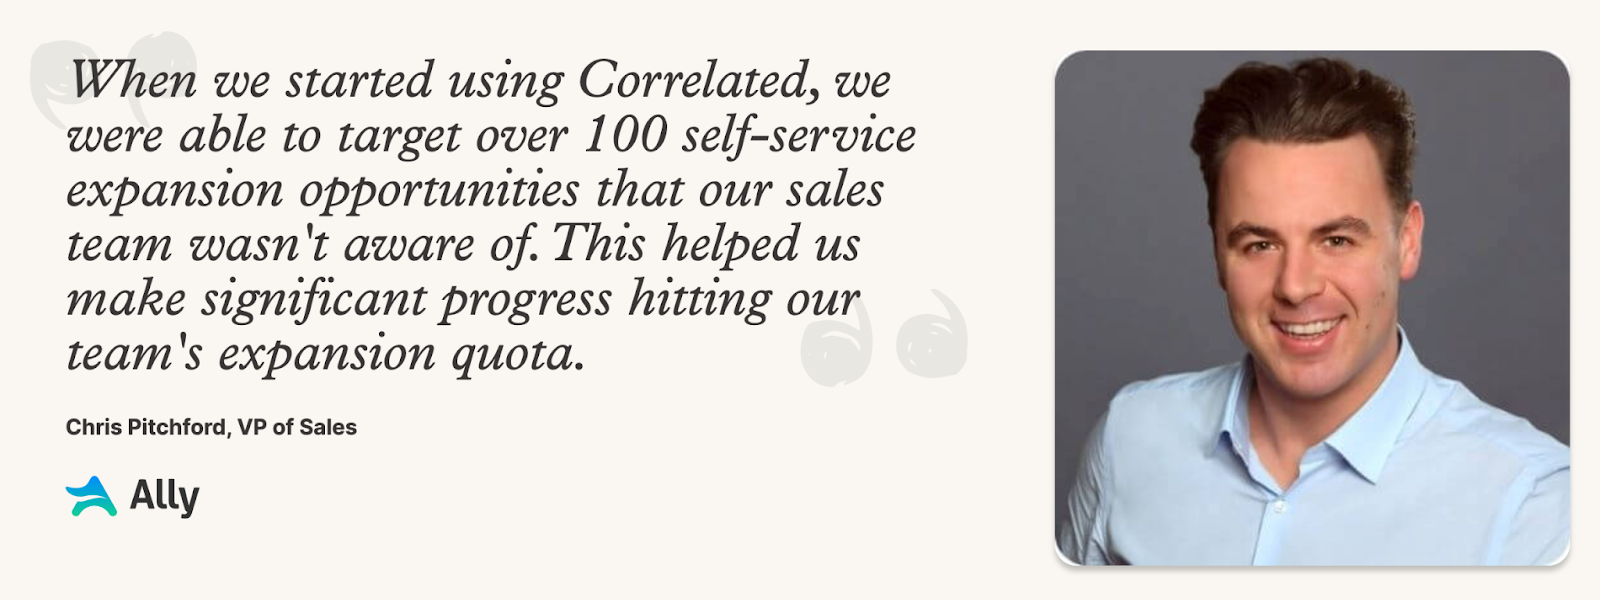 sales leaders use correlated successfully for expansion